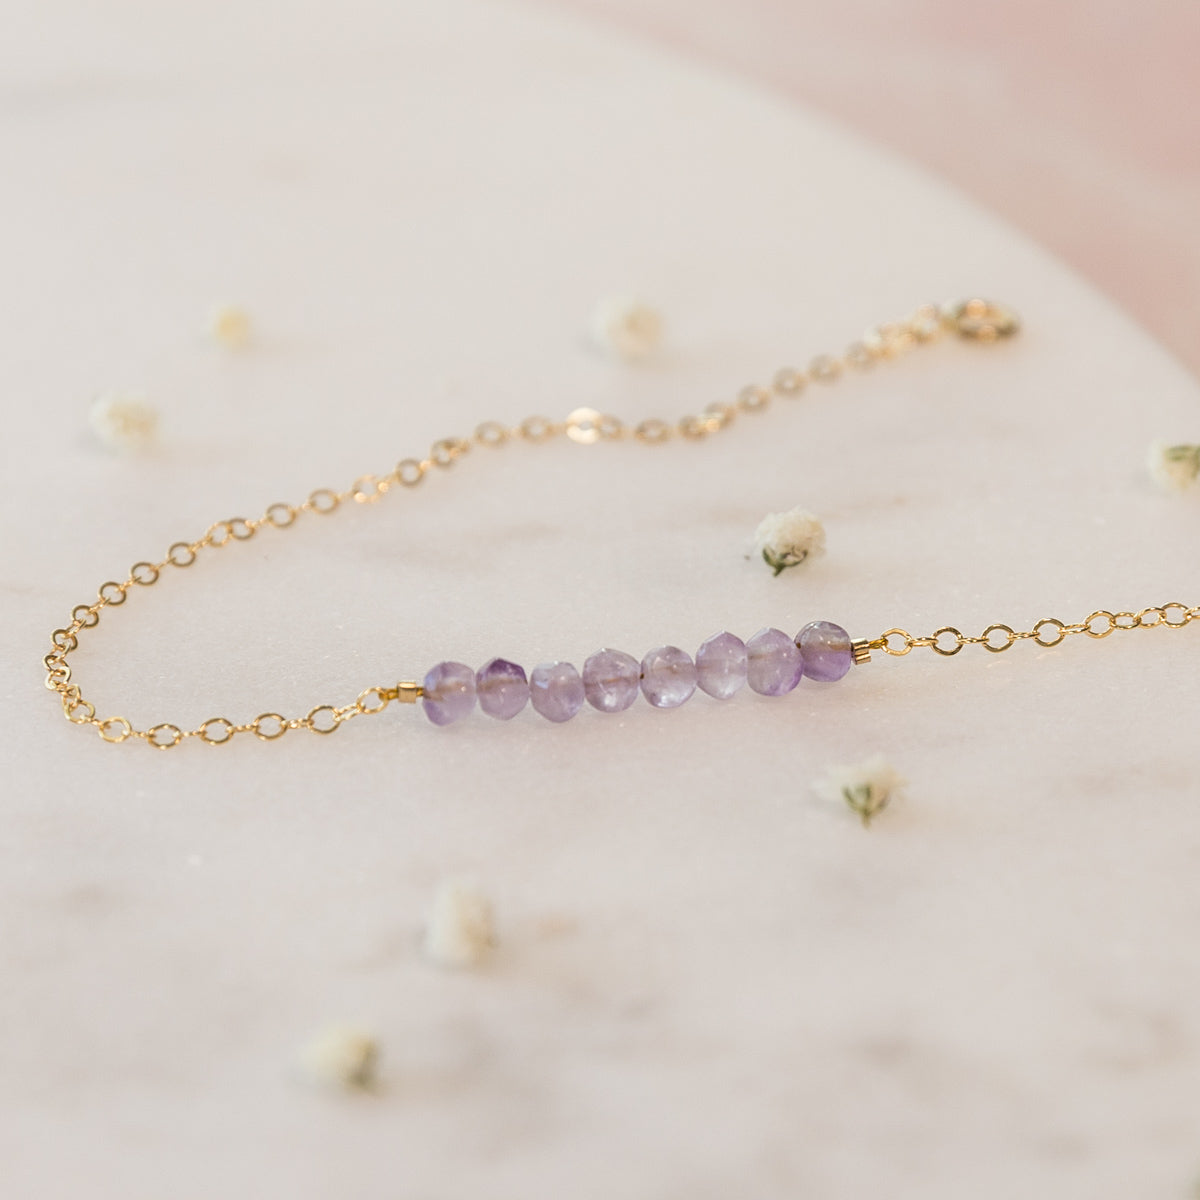 Amethyst Jewelry, Bridal Party Jewelry, Amethyst Bracelet, Crystal Bracelet, Healing Crystal Jewelry, February Birthstone Gift For Her, Dainty Celestial  Bracelet, Minimal Bracelet, Bohemian, Gemstone Bracelet, Crystal Bracelet Liz.Beth Jewelry Co.